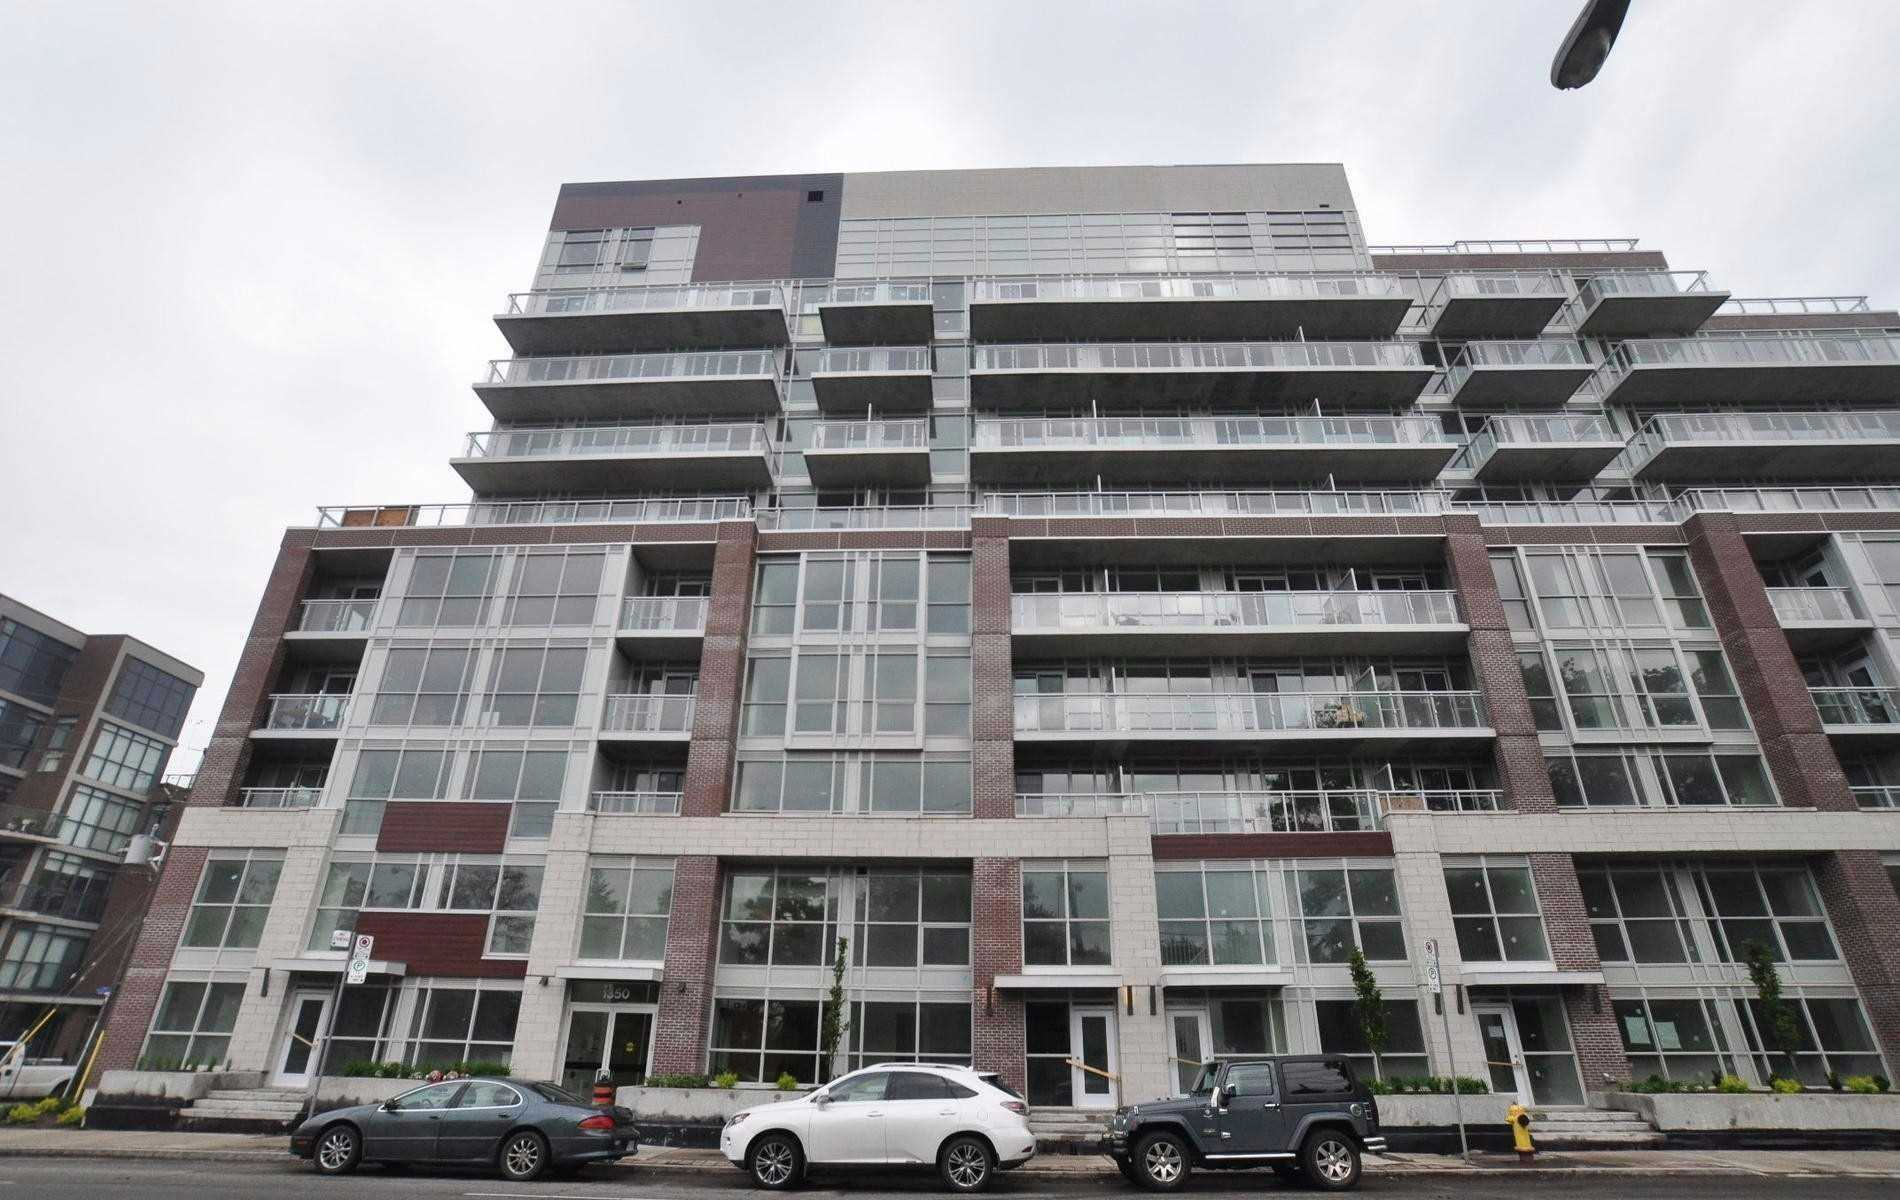 1350 Kingston Rd, Toronto, Ontario M1N1P9, 2 Bedrooms Bedrooms, 5 Rooms Rooms,2 BathroomsBathrooms,Condo Apt,For Sale,Kingston,E4910291